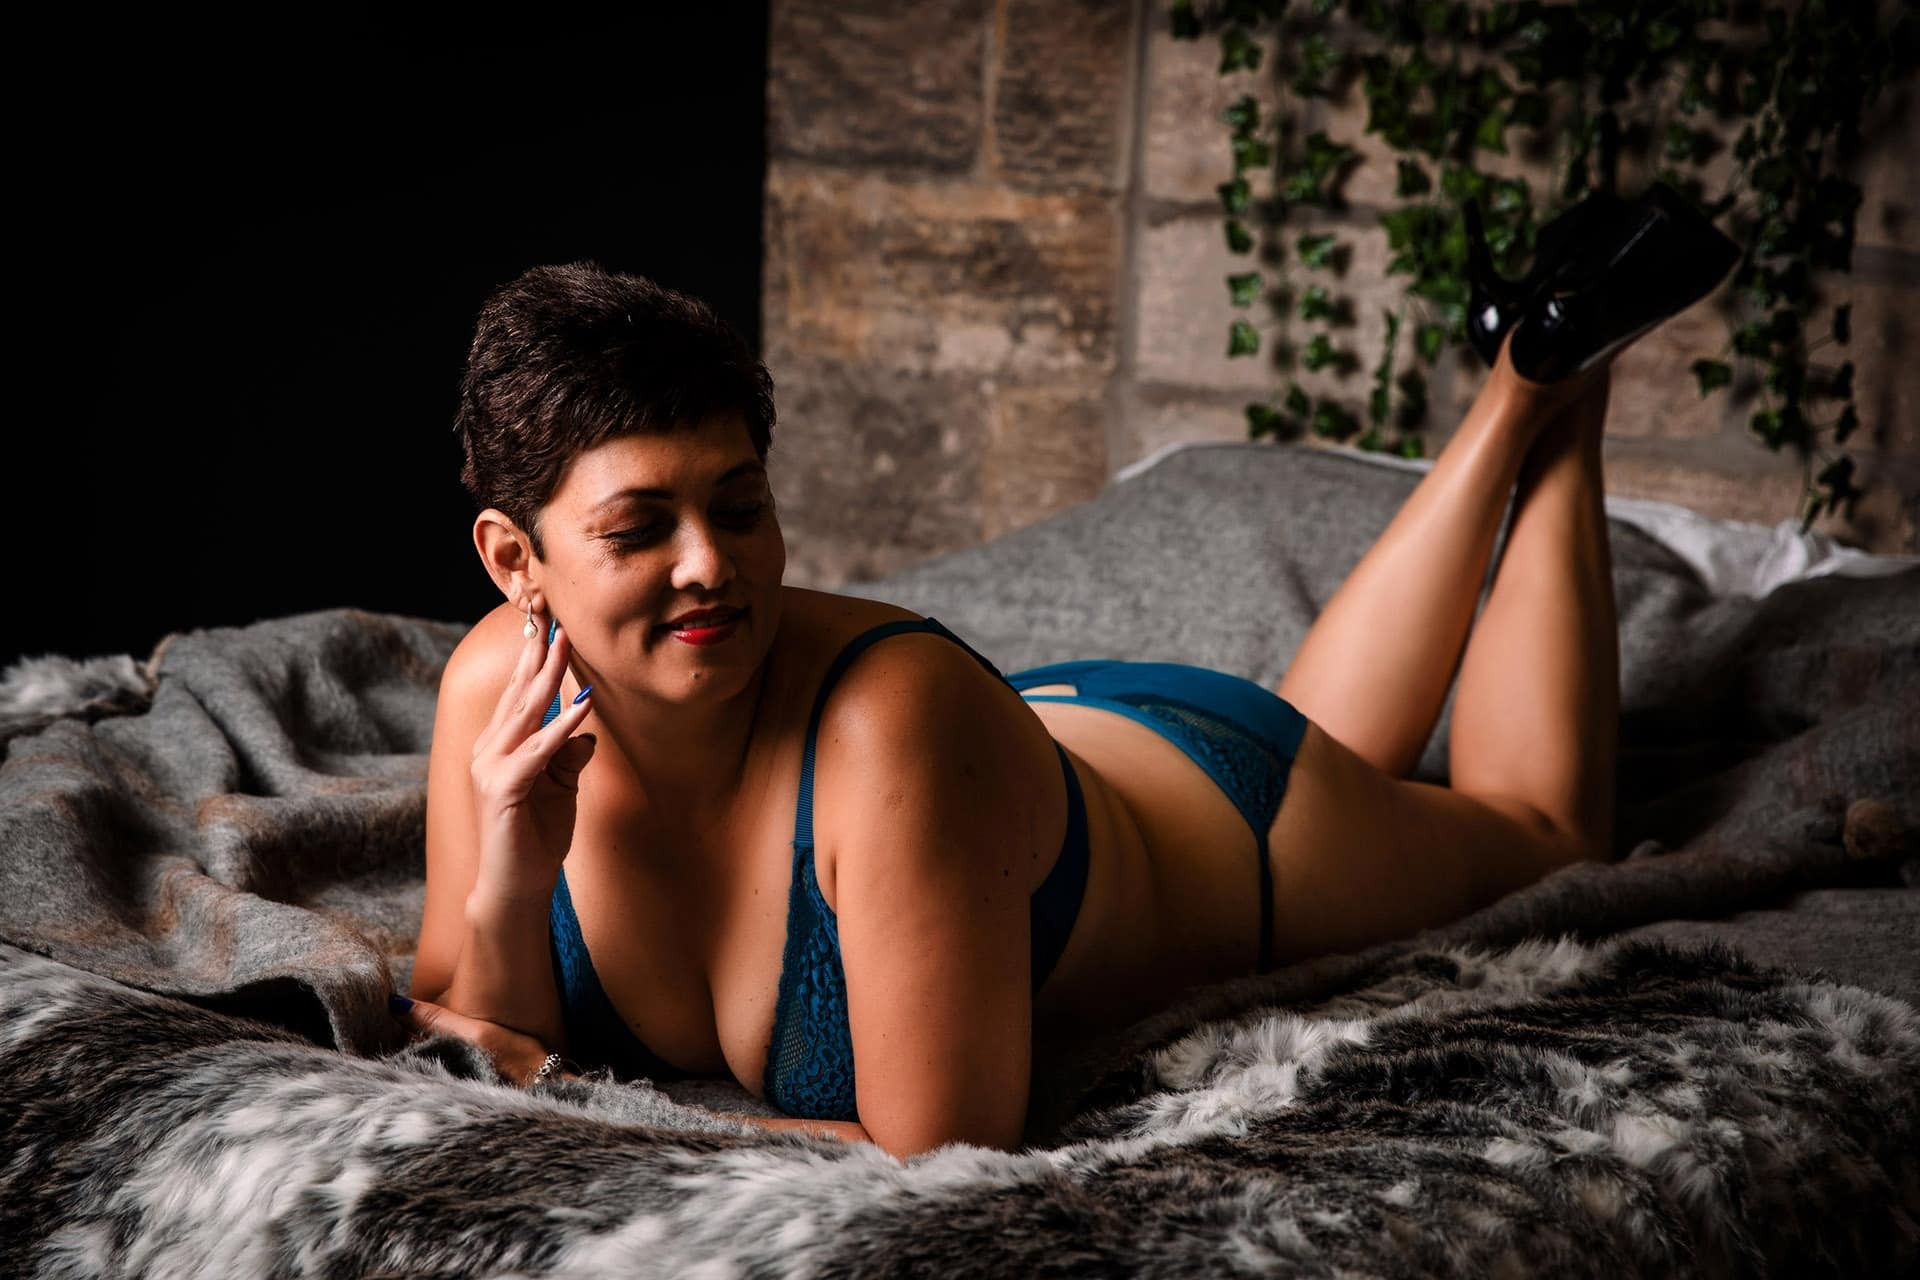 mature woman laying on bed for boudoir shoot